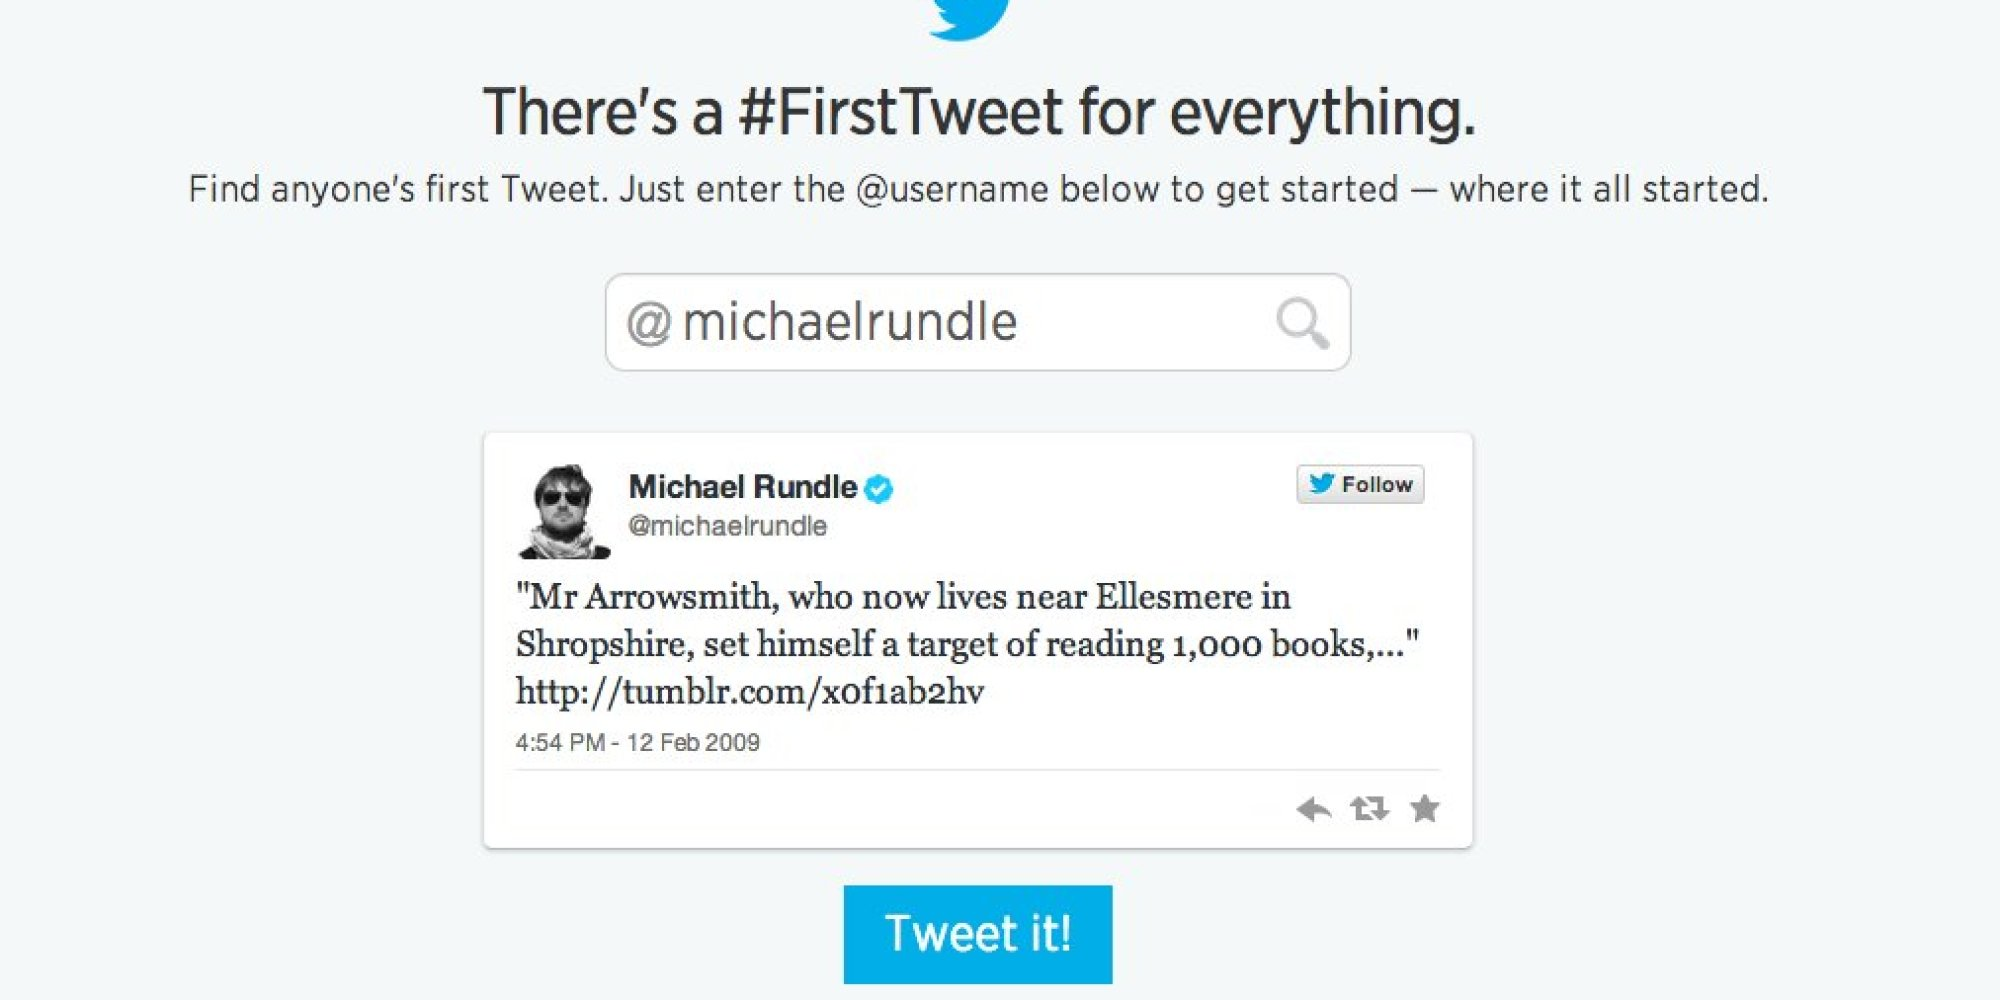 First Tweets Ever images